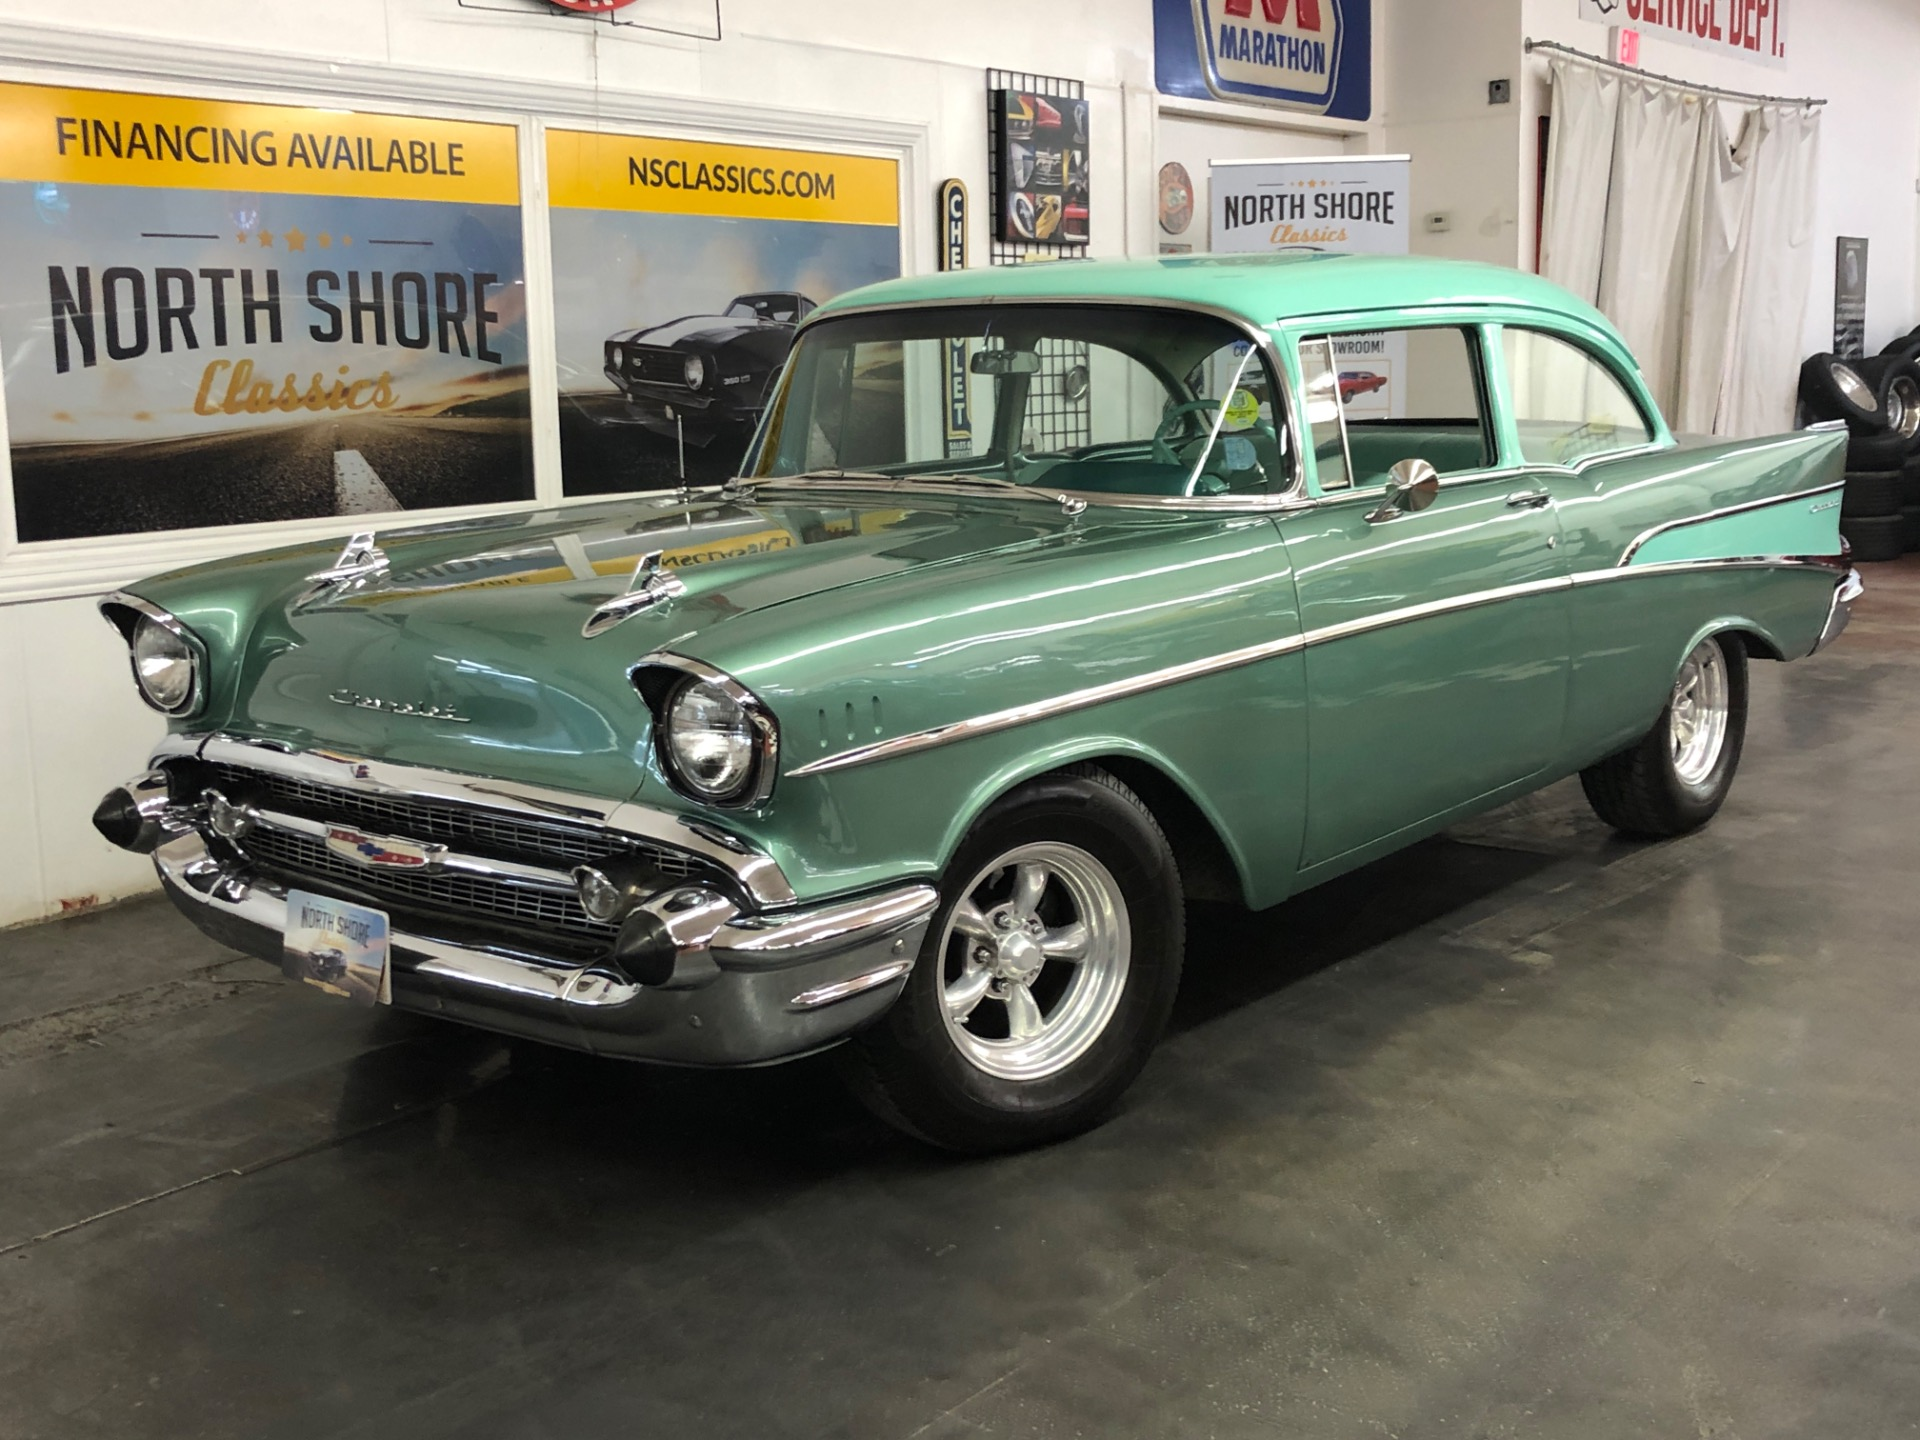 Used 1957 Chevrolet Bel Air/150/210 383 V8 Great Driving Classic | Mundelein, IL